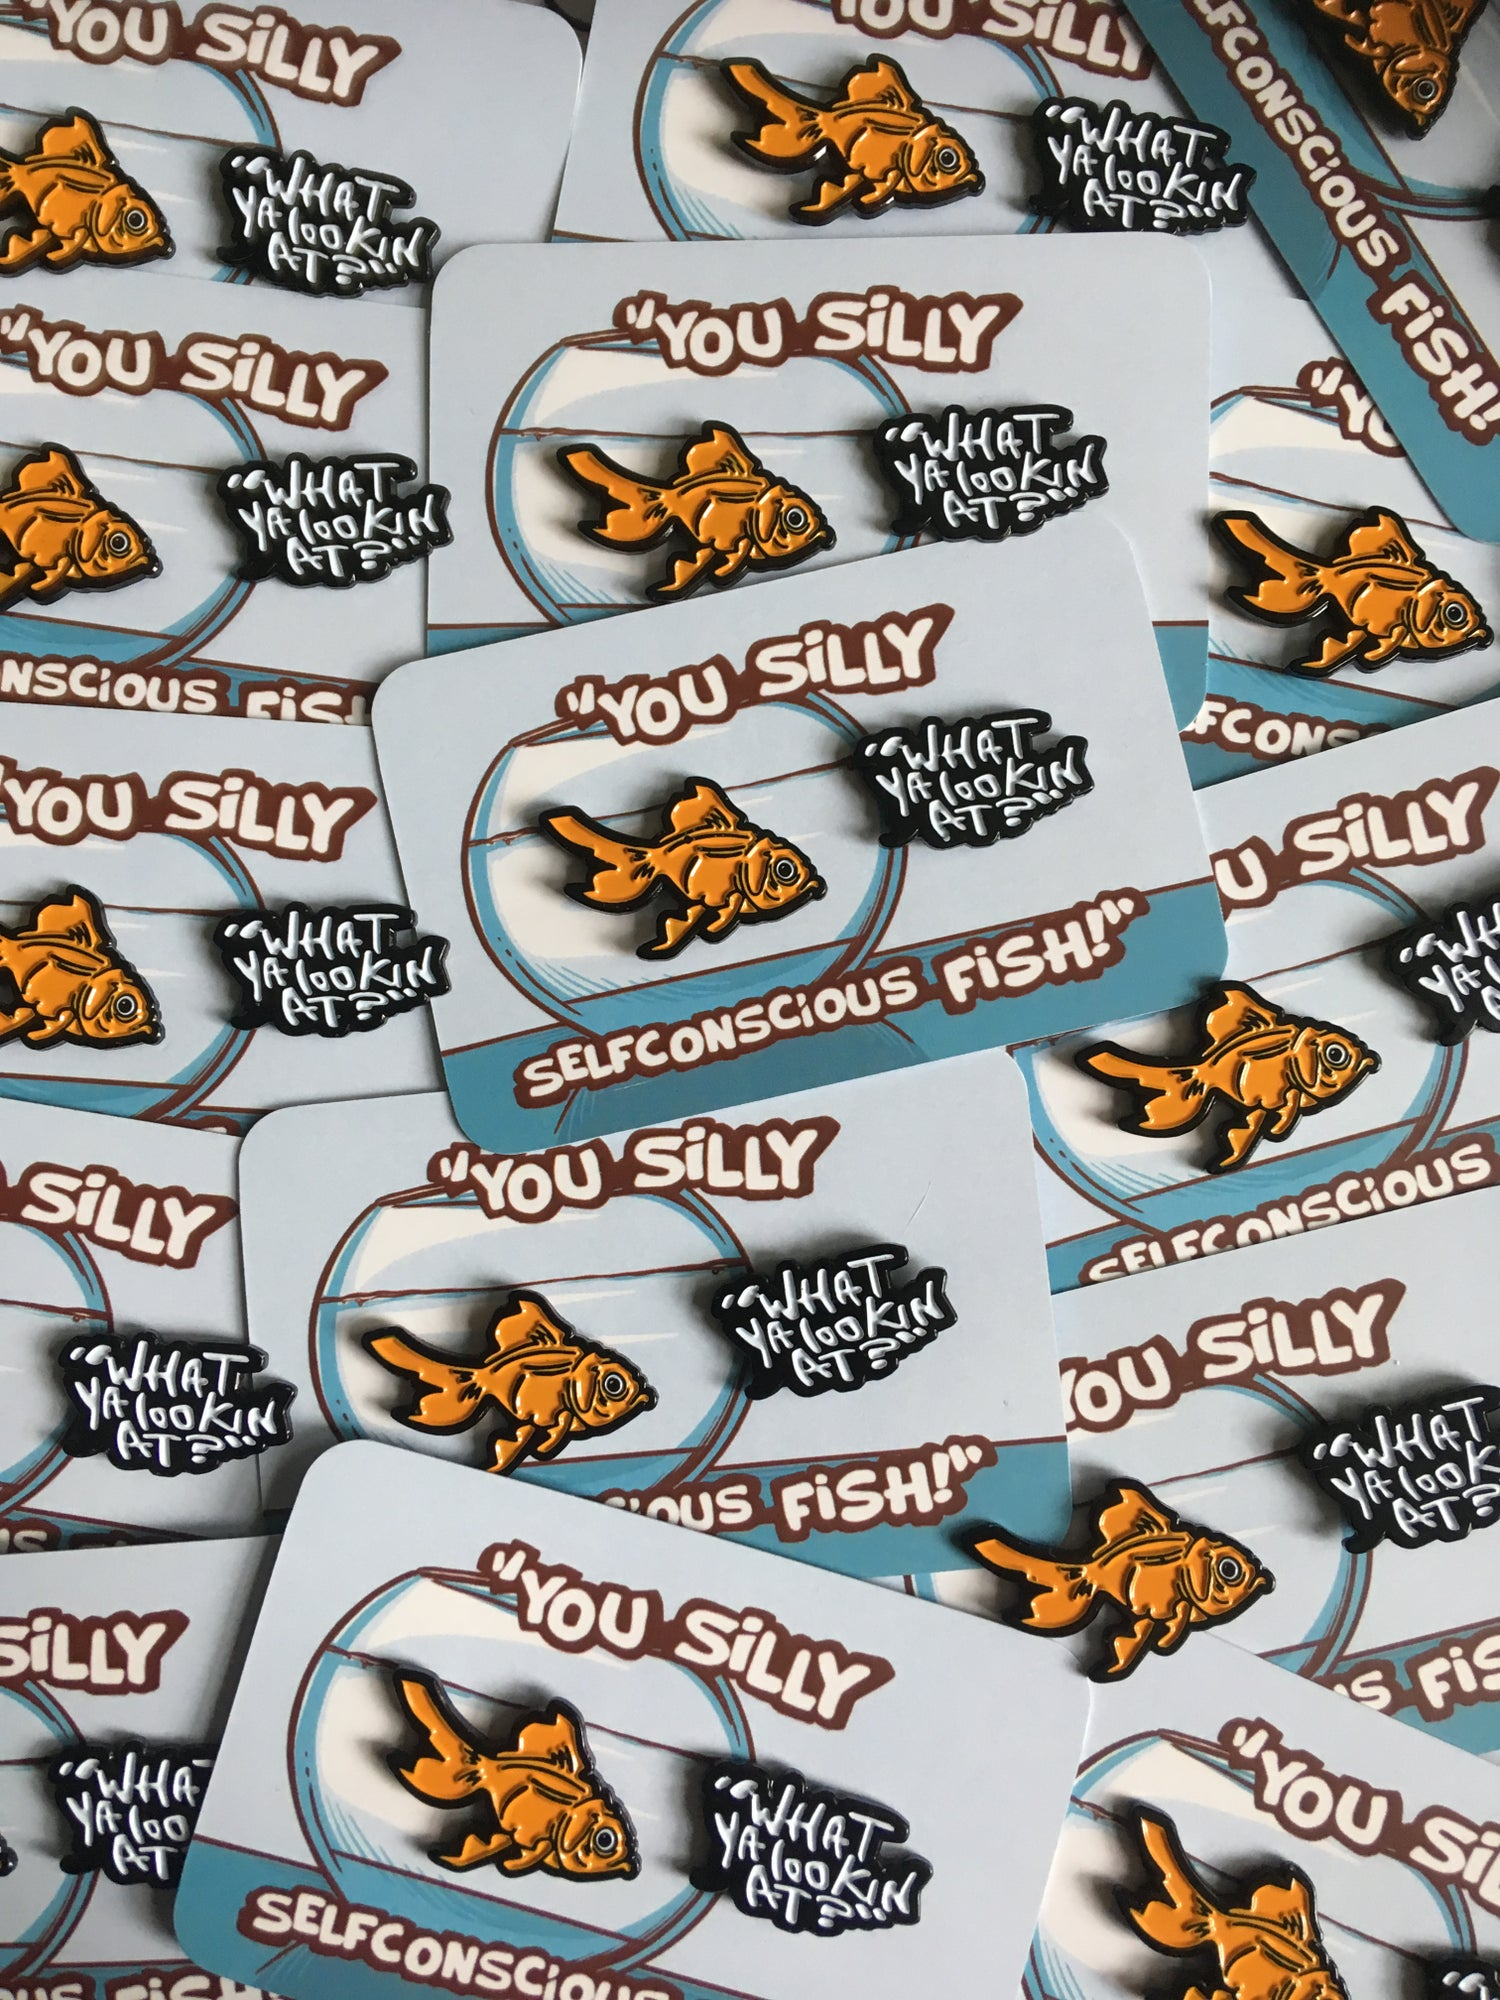 Image of You silly self conscious fish pin set